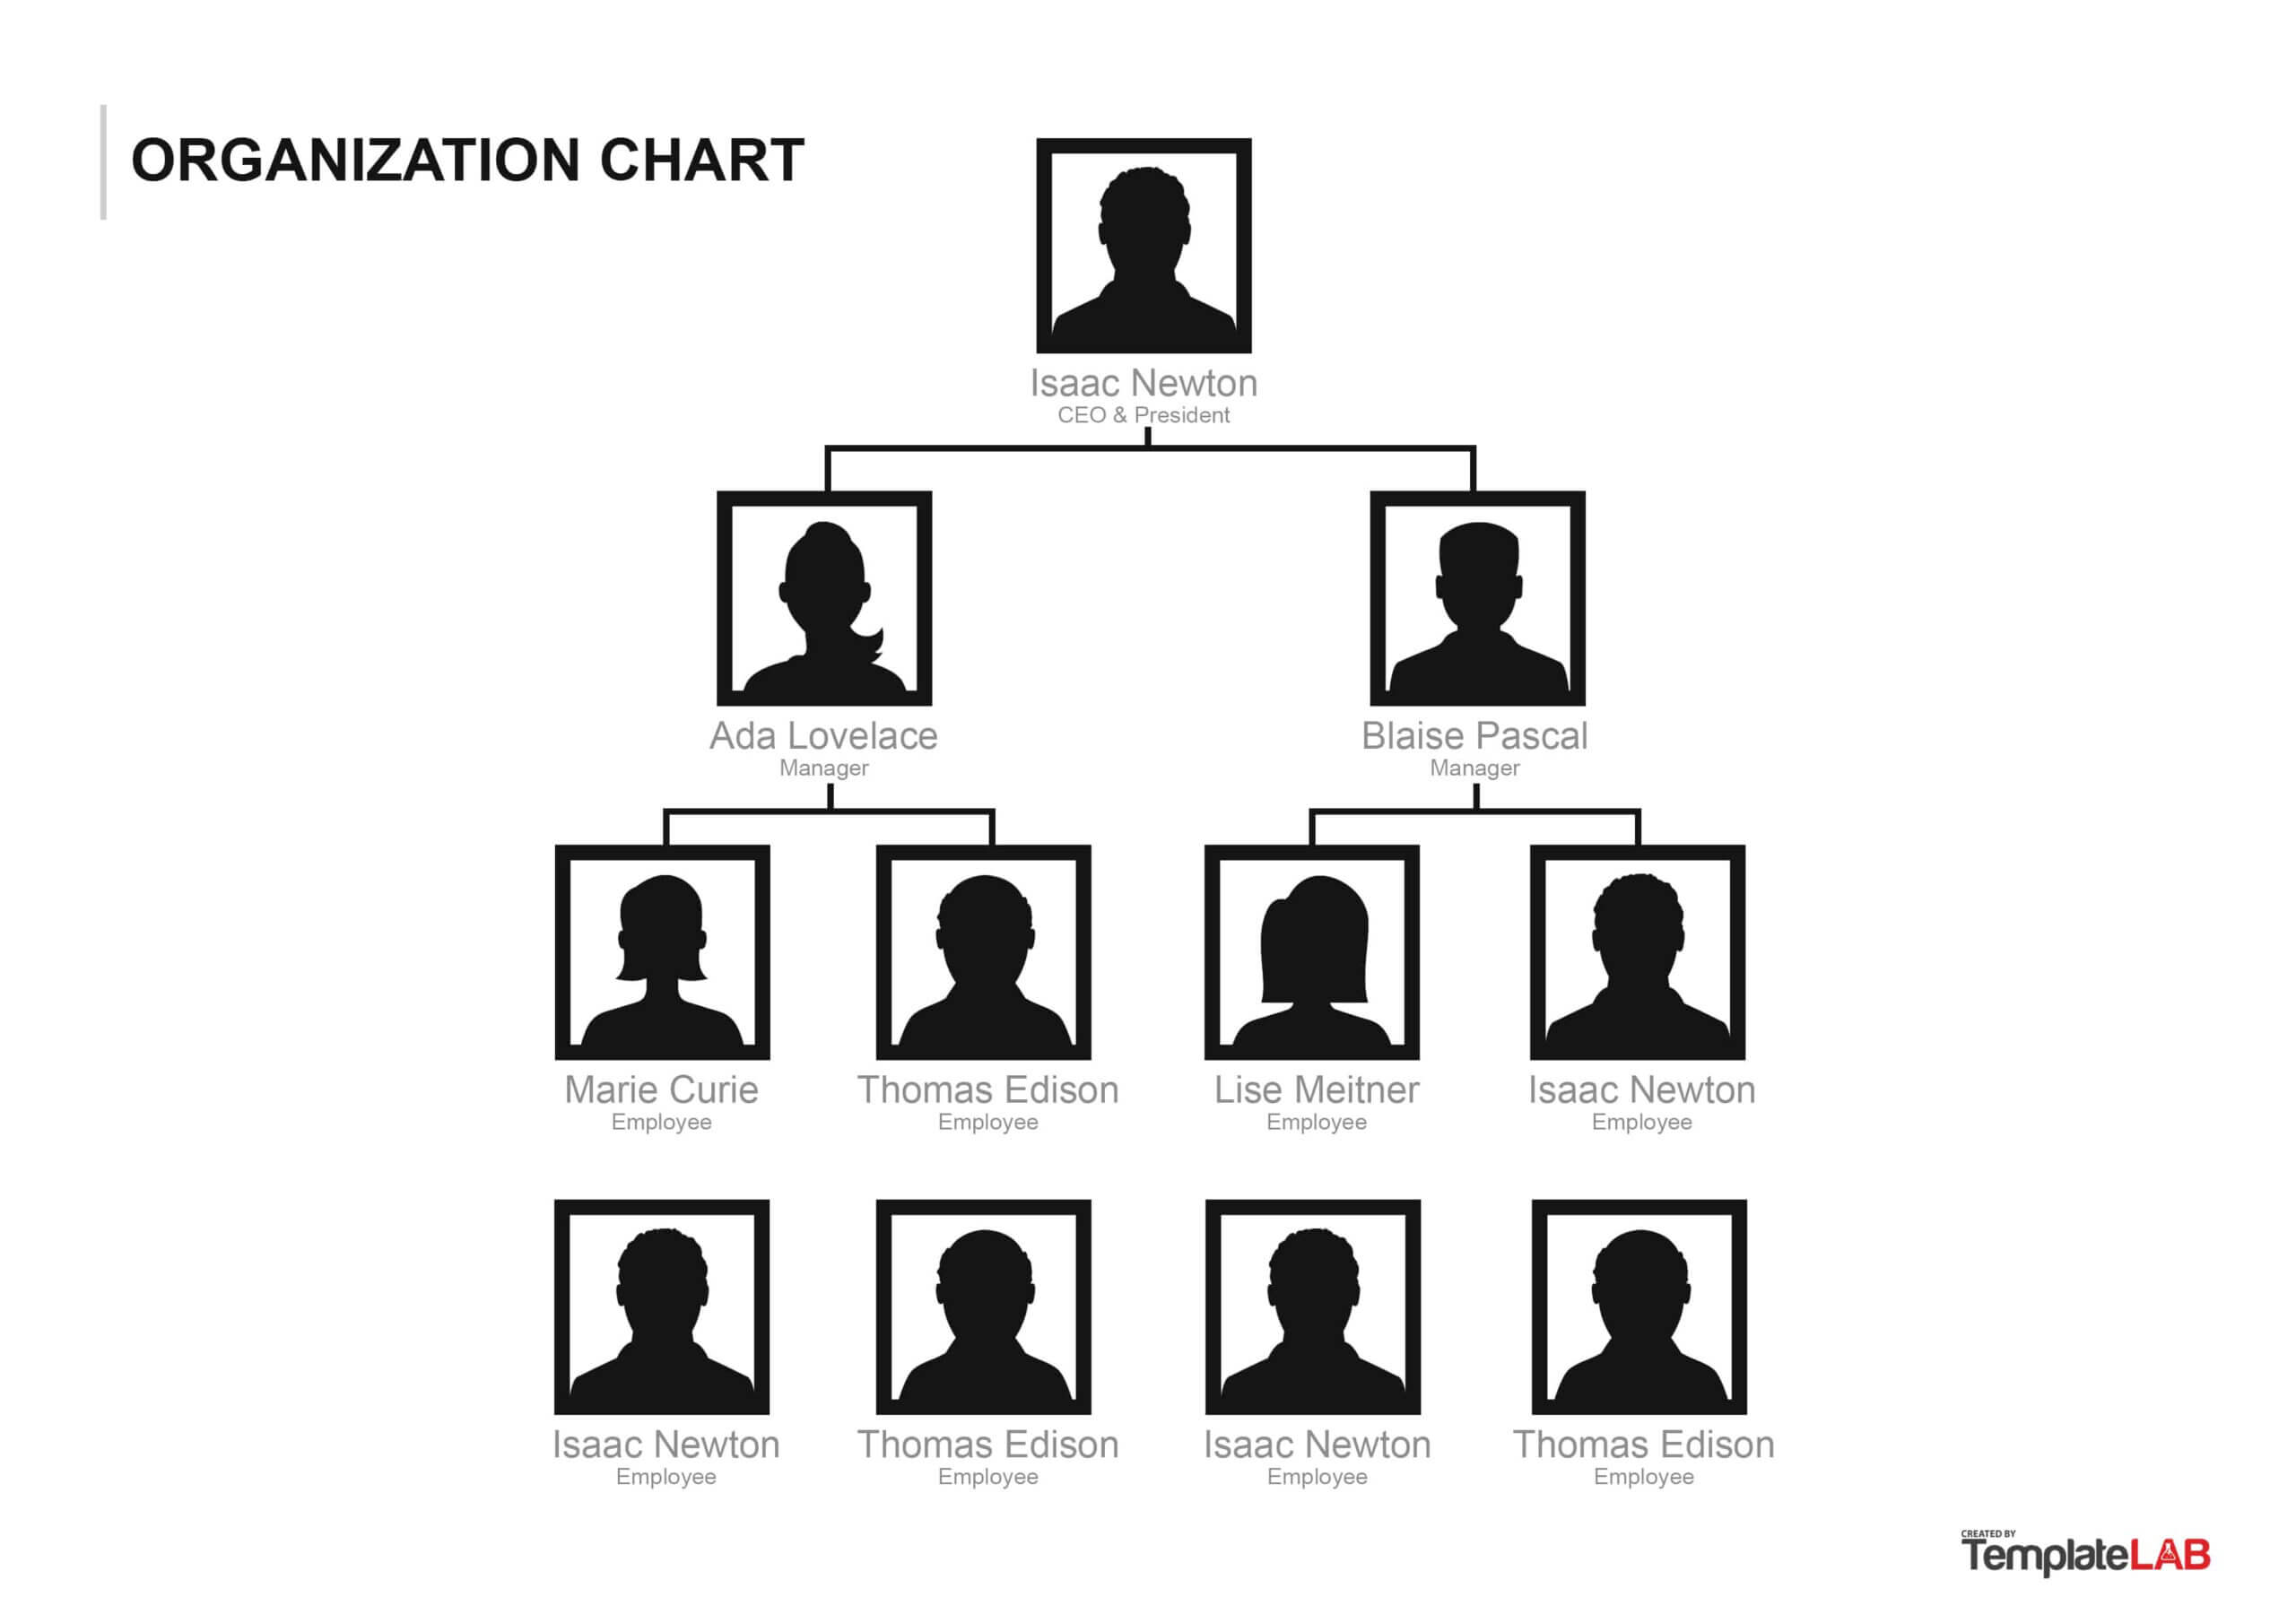 40 Organizational Chart Templates (Word, Excel, Powerpoint) Inside Organogram Template Word Free